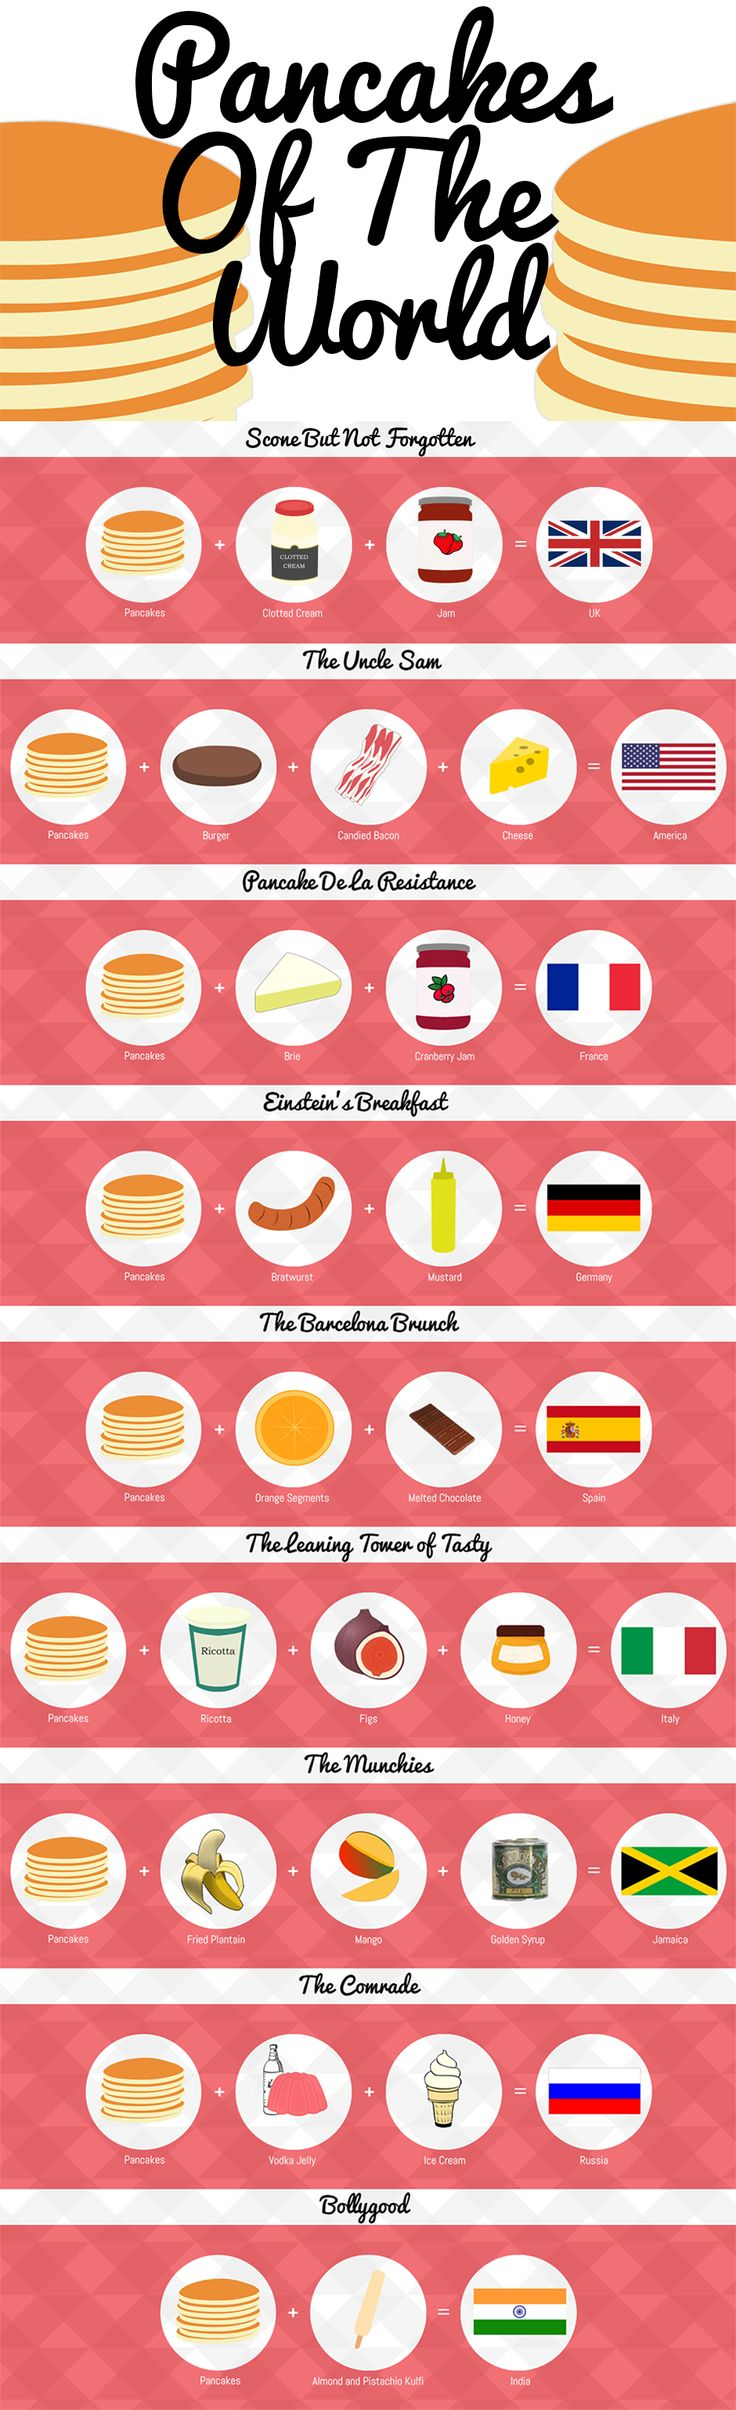 Pancakes of the World